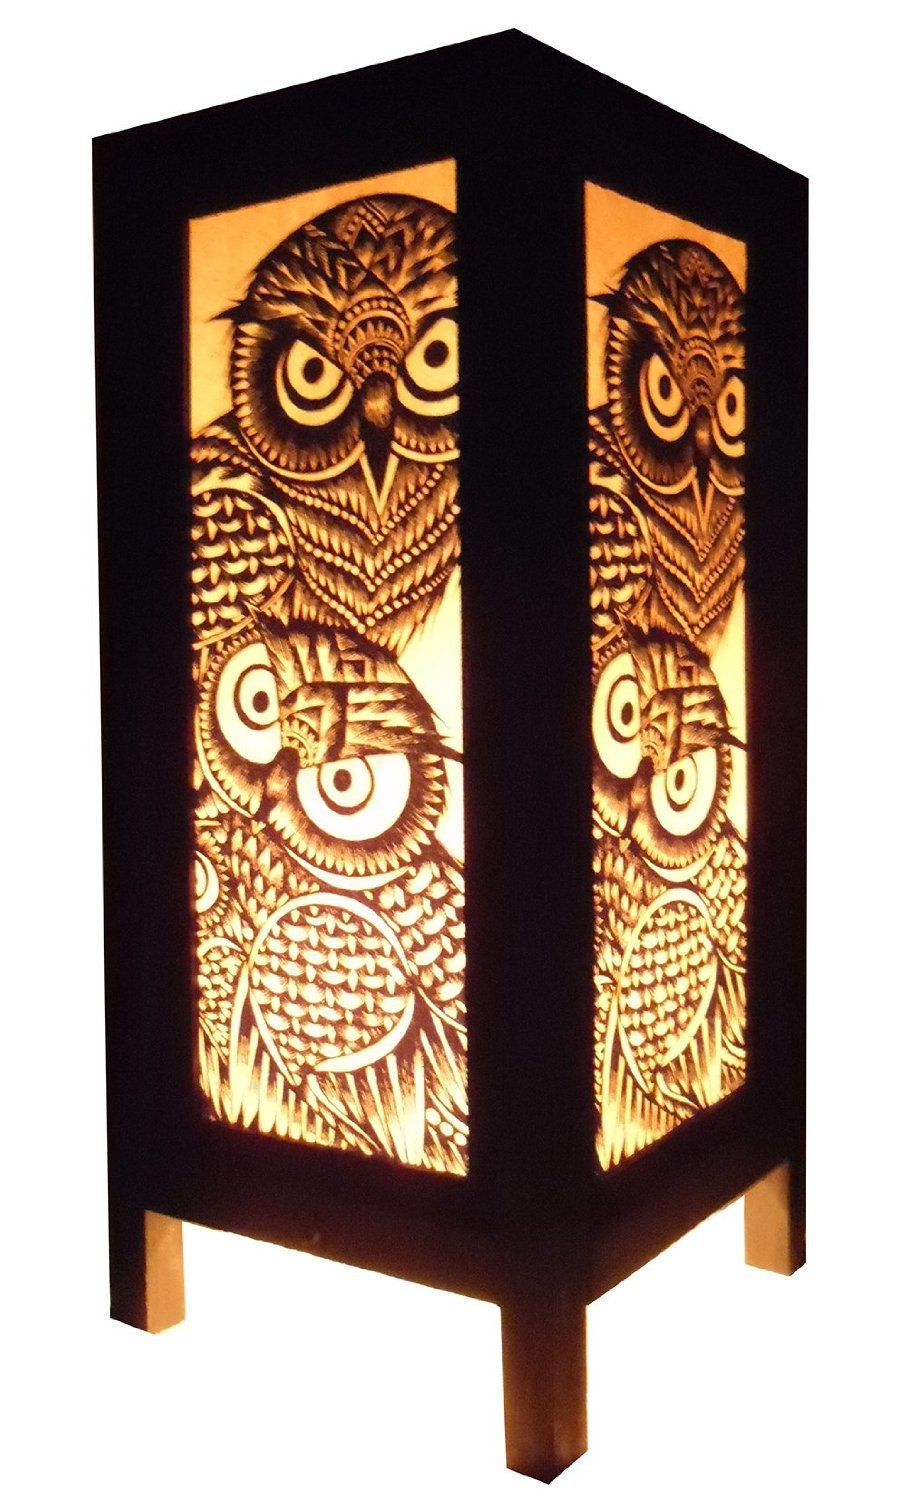 Night owl reading lamps - Thai Vintage Handmade Asian Oriental Handcraft Night Owl Bird Bedside Table Lights Or Floor Wood Paper Lamp Home Decor Bedroom Decoration Modern Design From